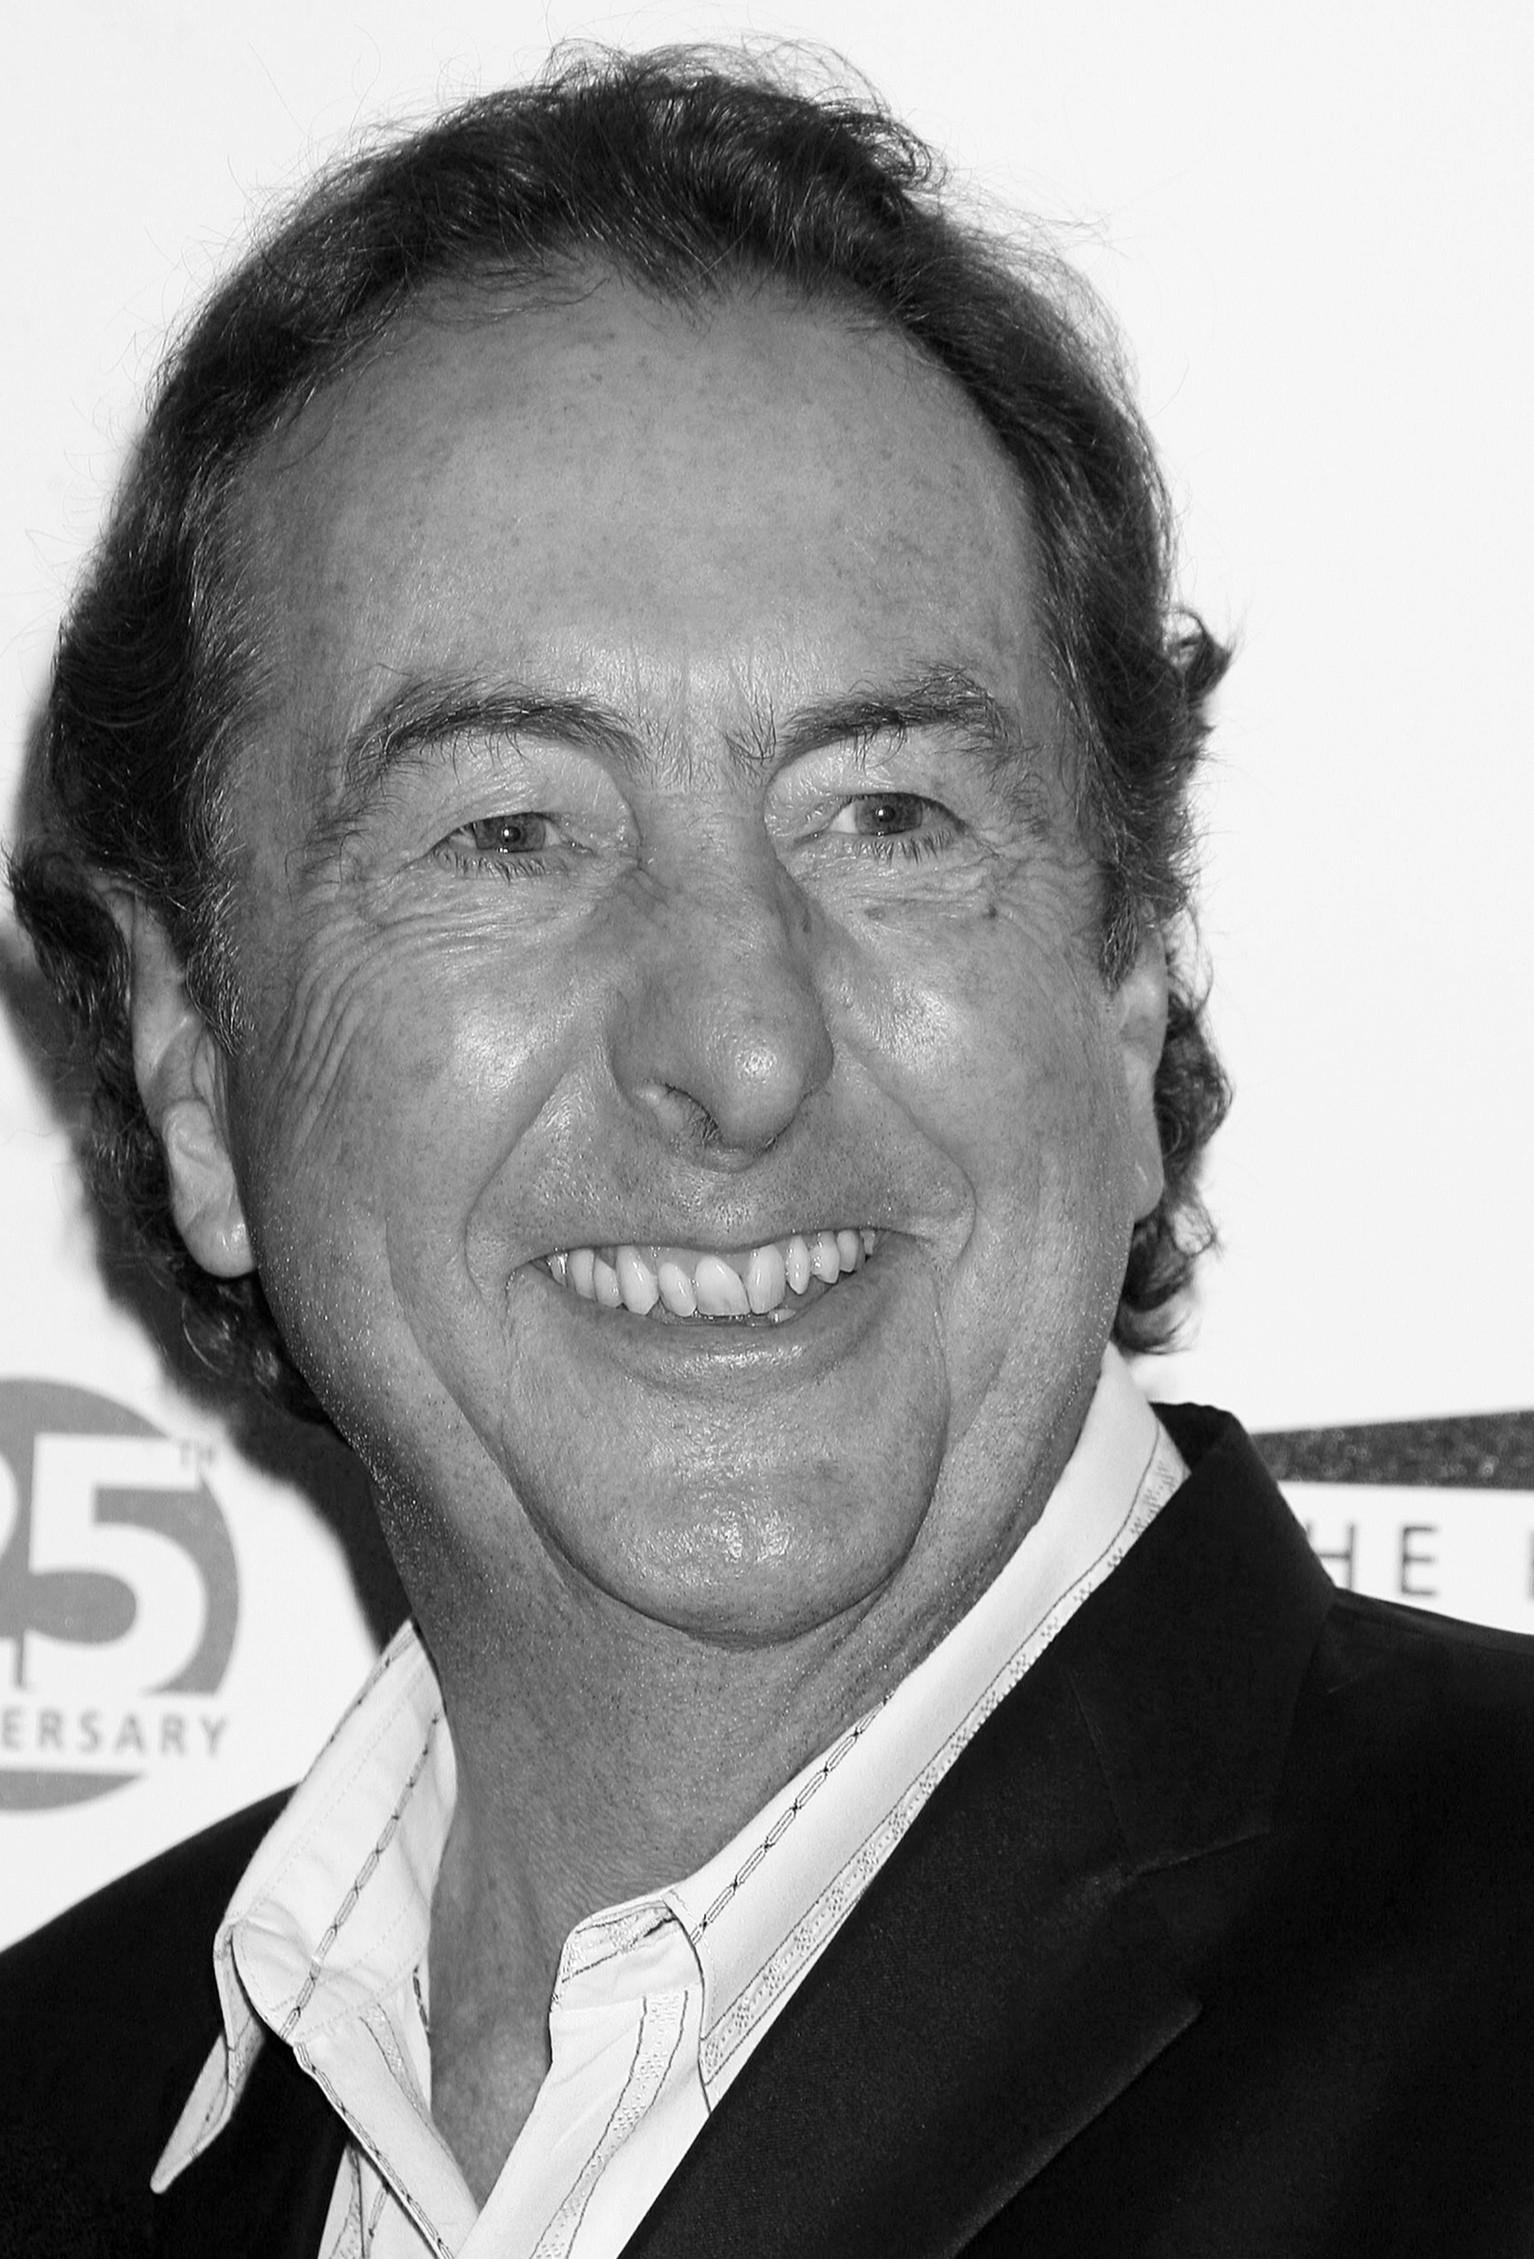 Eric Idle arrives at the Best Friends Animal Society's 2009 Lint Roller Party at the Hollywood Palladium on October 3, 2009 in Hollywood, California. Picture by Derek Ross/LFI